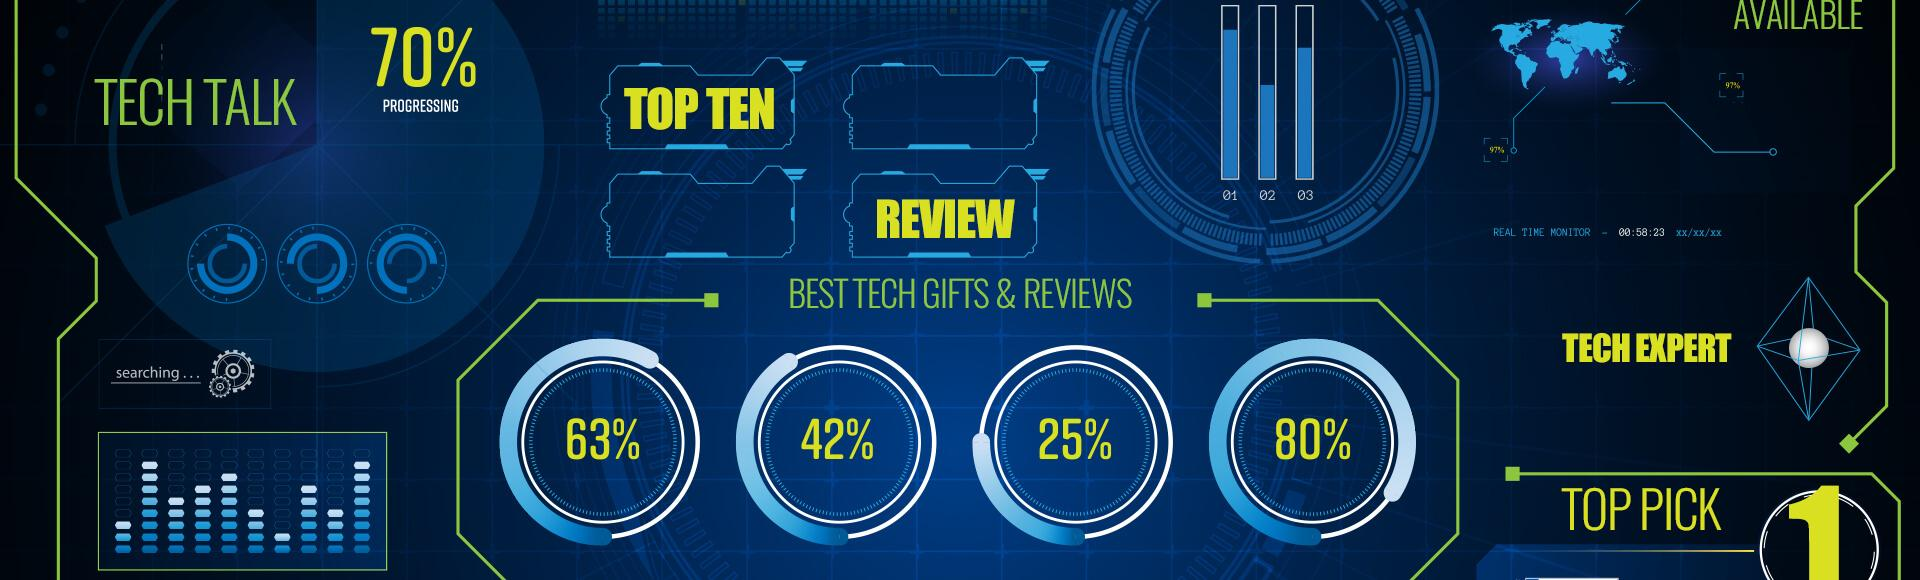 Best Tech Gifts UK Reviews